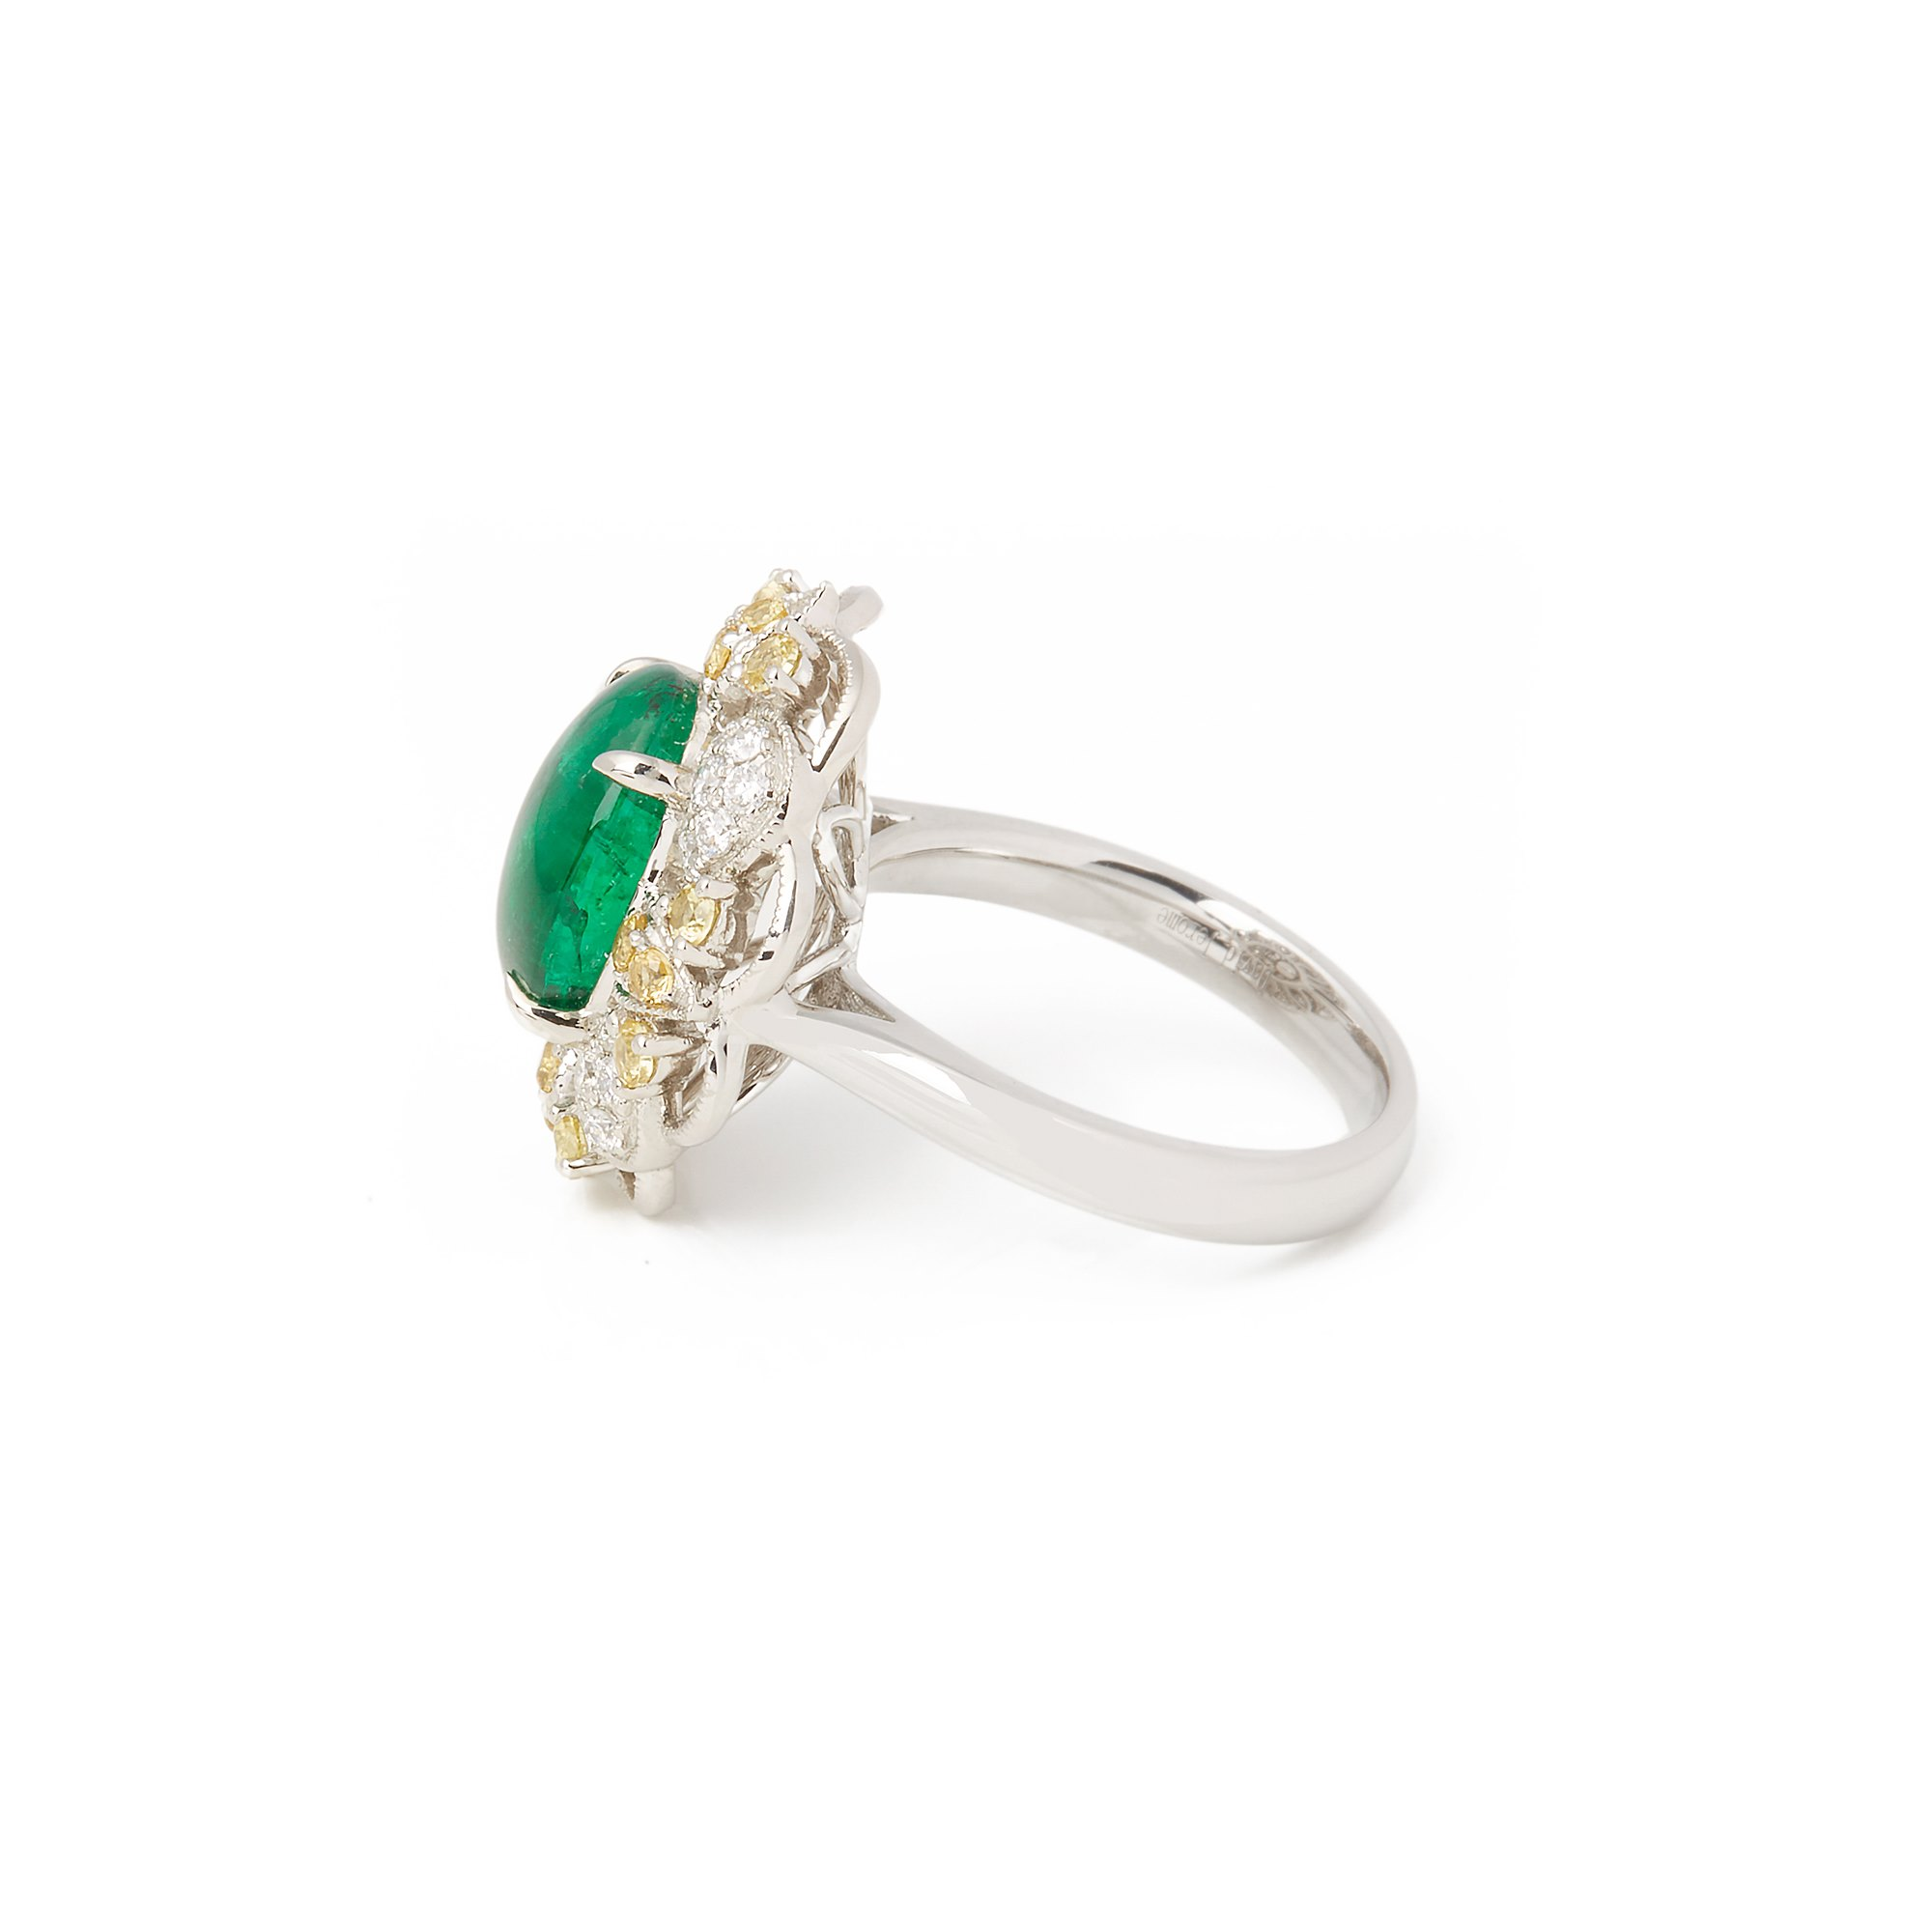 David Jerome Certified 6.41ct Untreated Columbian Cabochon Emerald and Diamond Cluster Ring